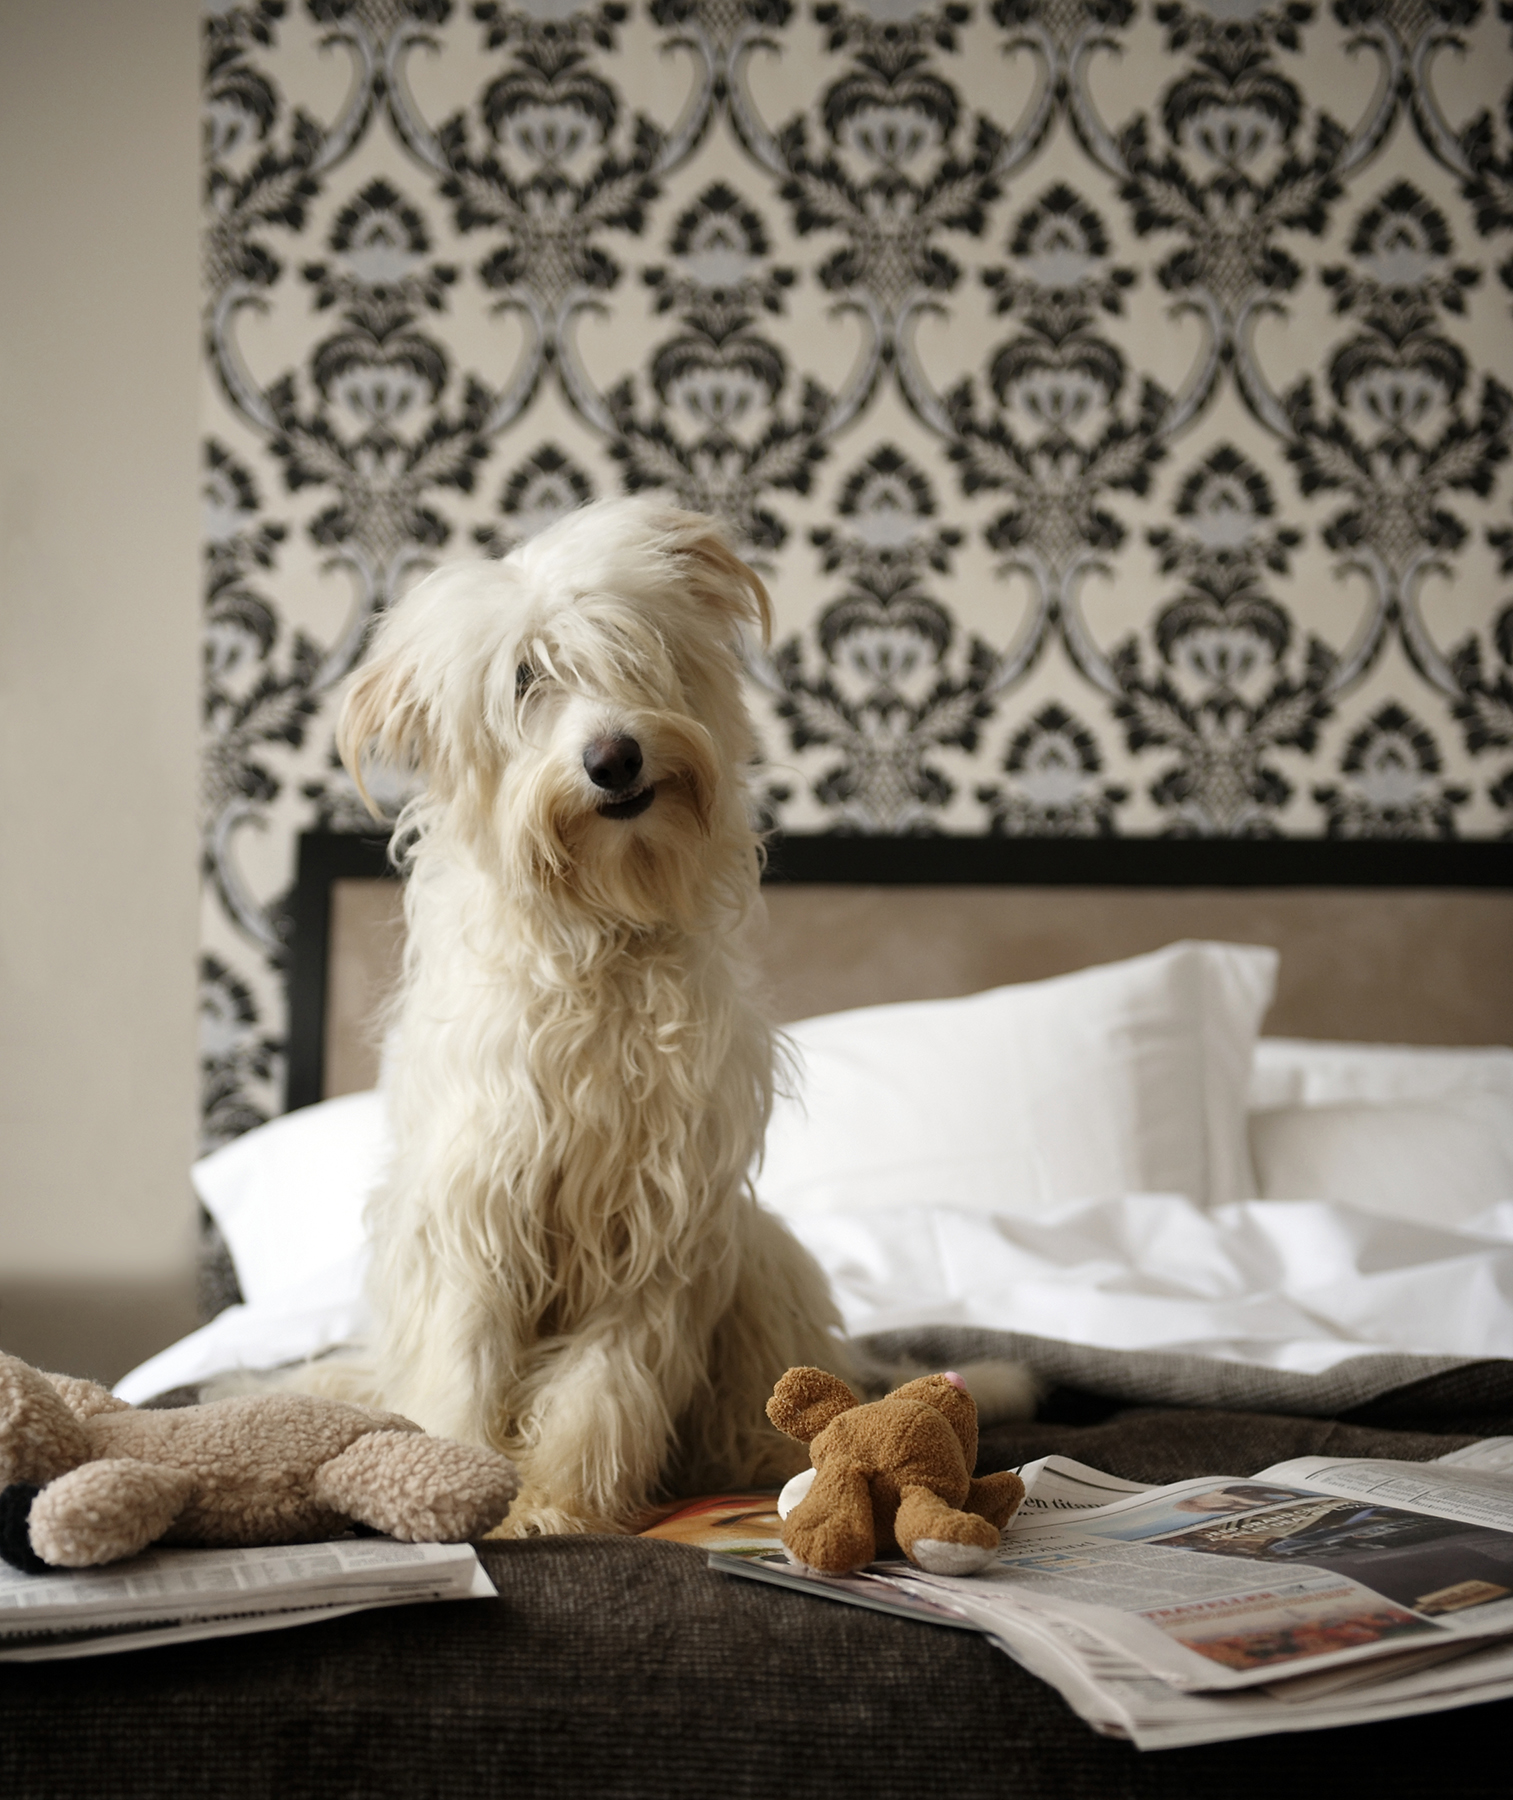 Dog sitting on bed in front of patterned wallpaper